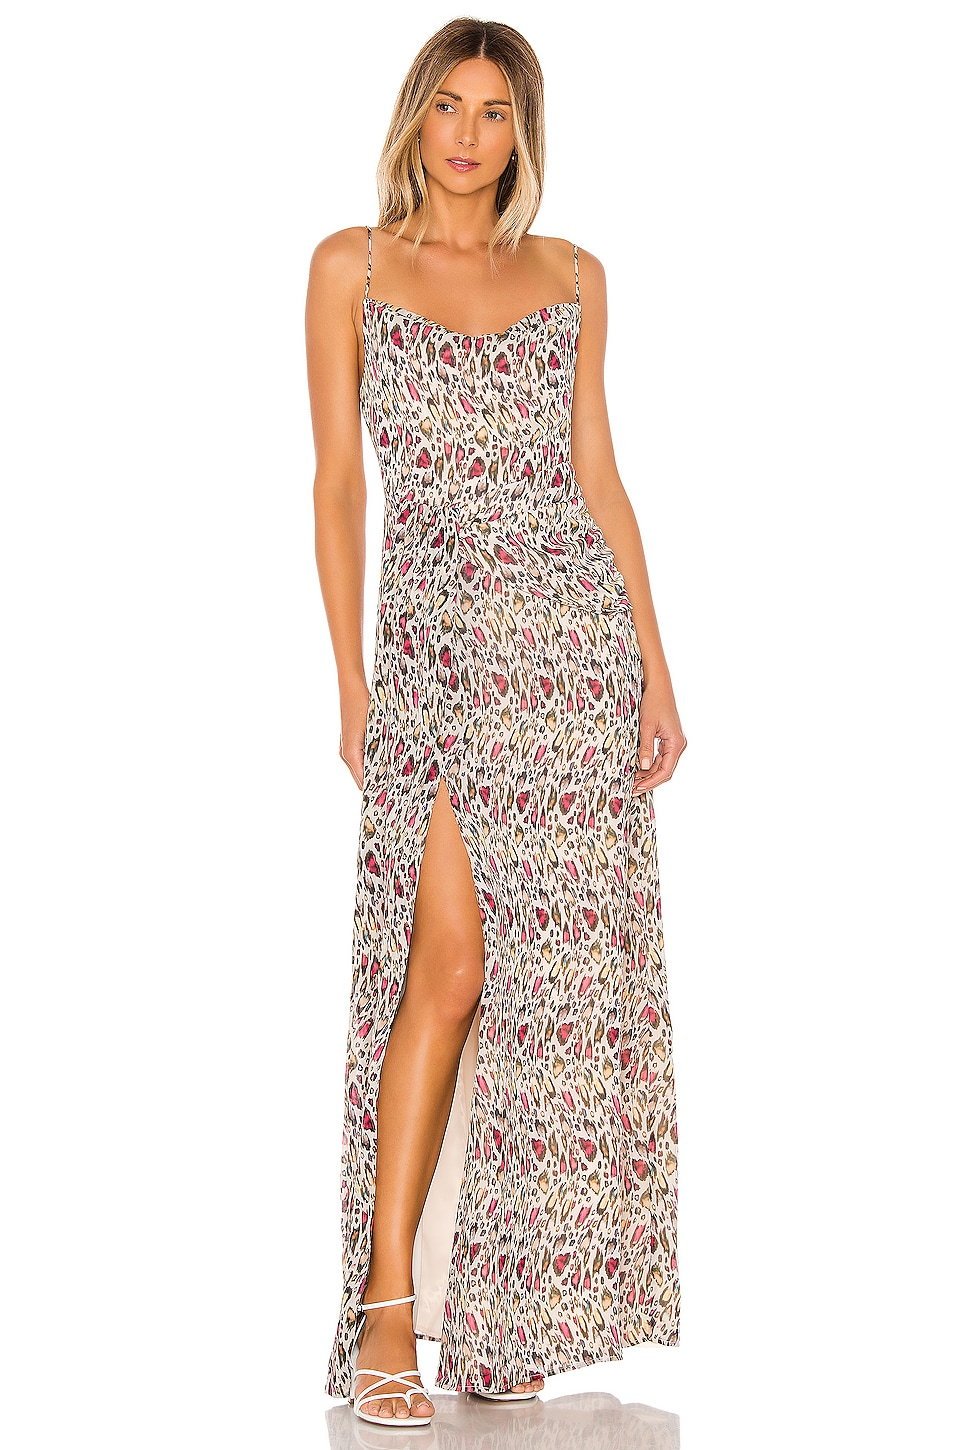 MAJORELLE Talia Maxi Dress in Leopard Multi